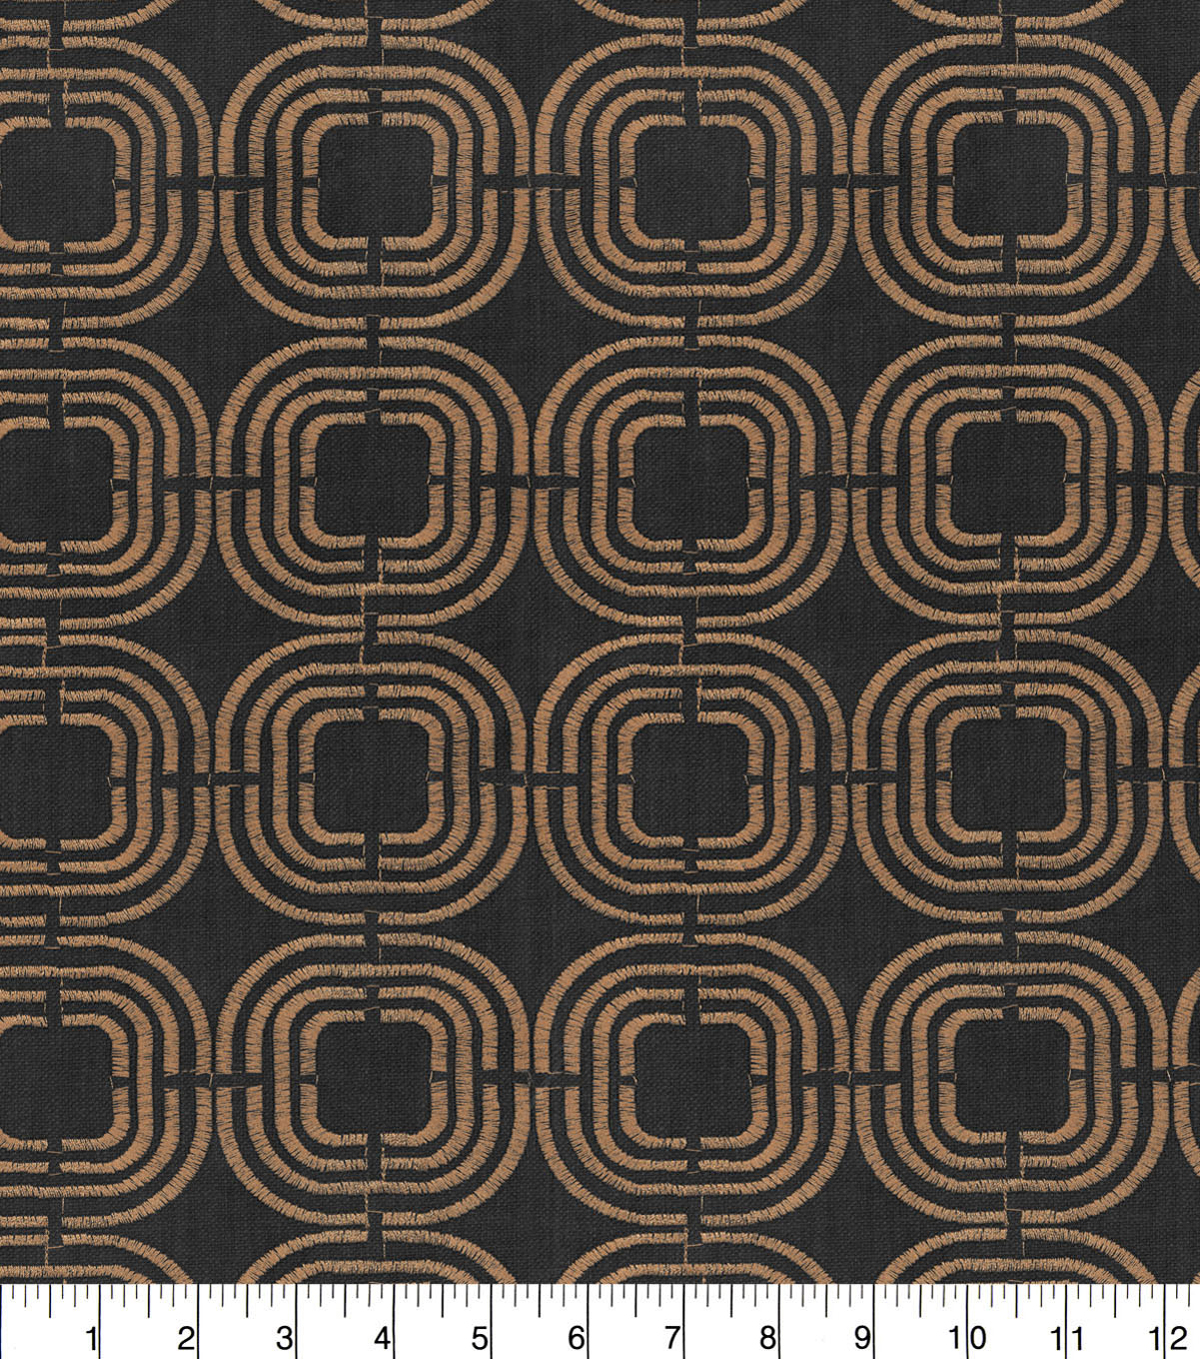 PKL Studio Upholstery Decor Fabric-Chain Reaction Umber